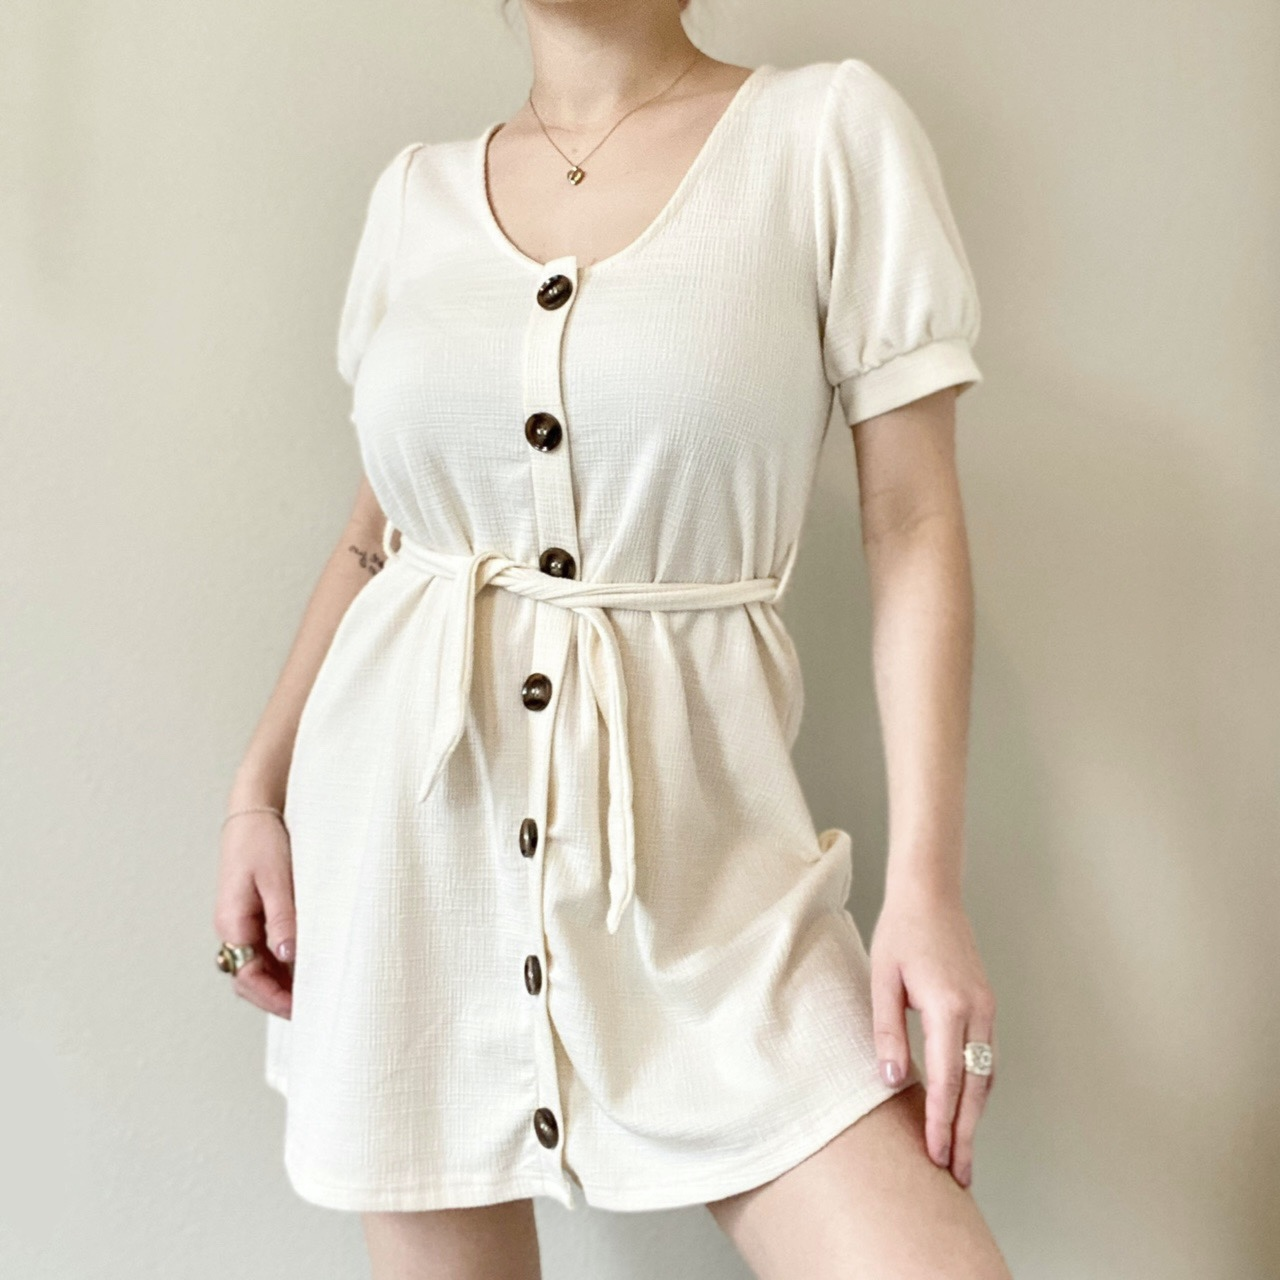 Product Image 1 - Adorable Cream Mini Dress with